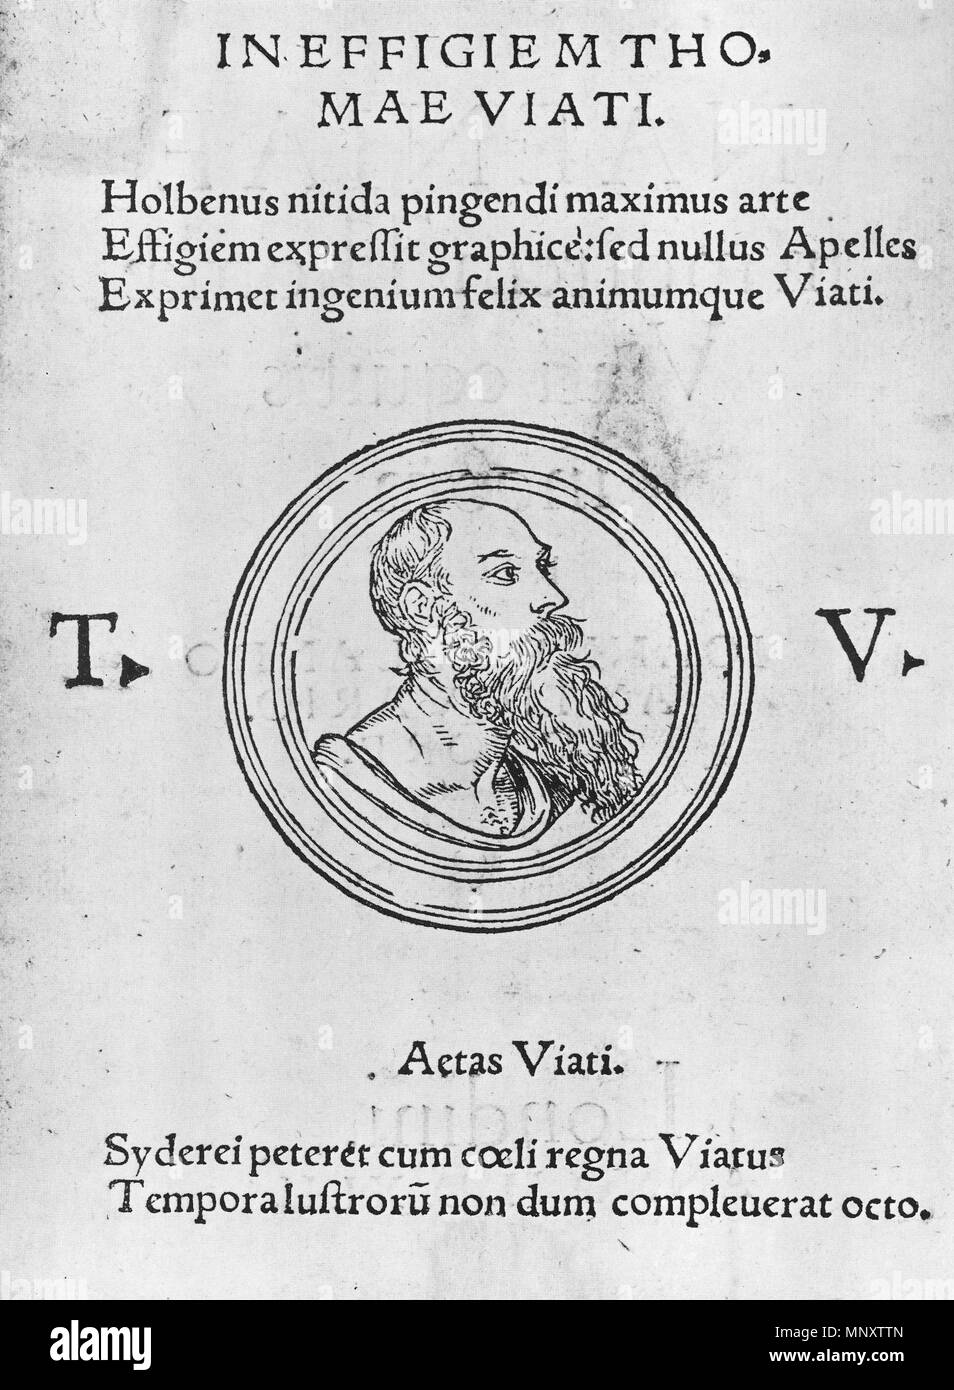 . English: Profile of Sir Thomas Wyatt wearing an antique drape. Woodcut published in John Leland's Naenia in 1548. This woodcut was probably based on a lost Holbein drawing or painting of Wyatt from around 1540. Holbein had already drawn Wyatt in the mid 1530s wearing a hat. Here he is shown balding. Four copies of the lost work, by other hands, survive (see 'Other versions' below for two). Sir Thomas Wyatt (1503?–42) was a diplomat and a gifted poet who introduced the Italian sonnet form to England. He was arrested after the fall of Anne Boleyn, whom he had admired in poetry, but he recovere - Stock Image